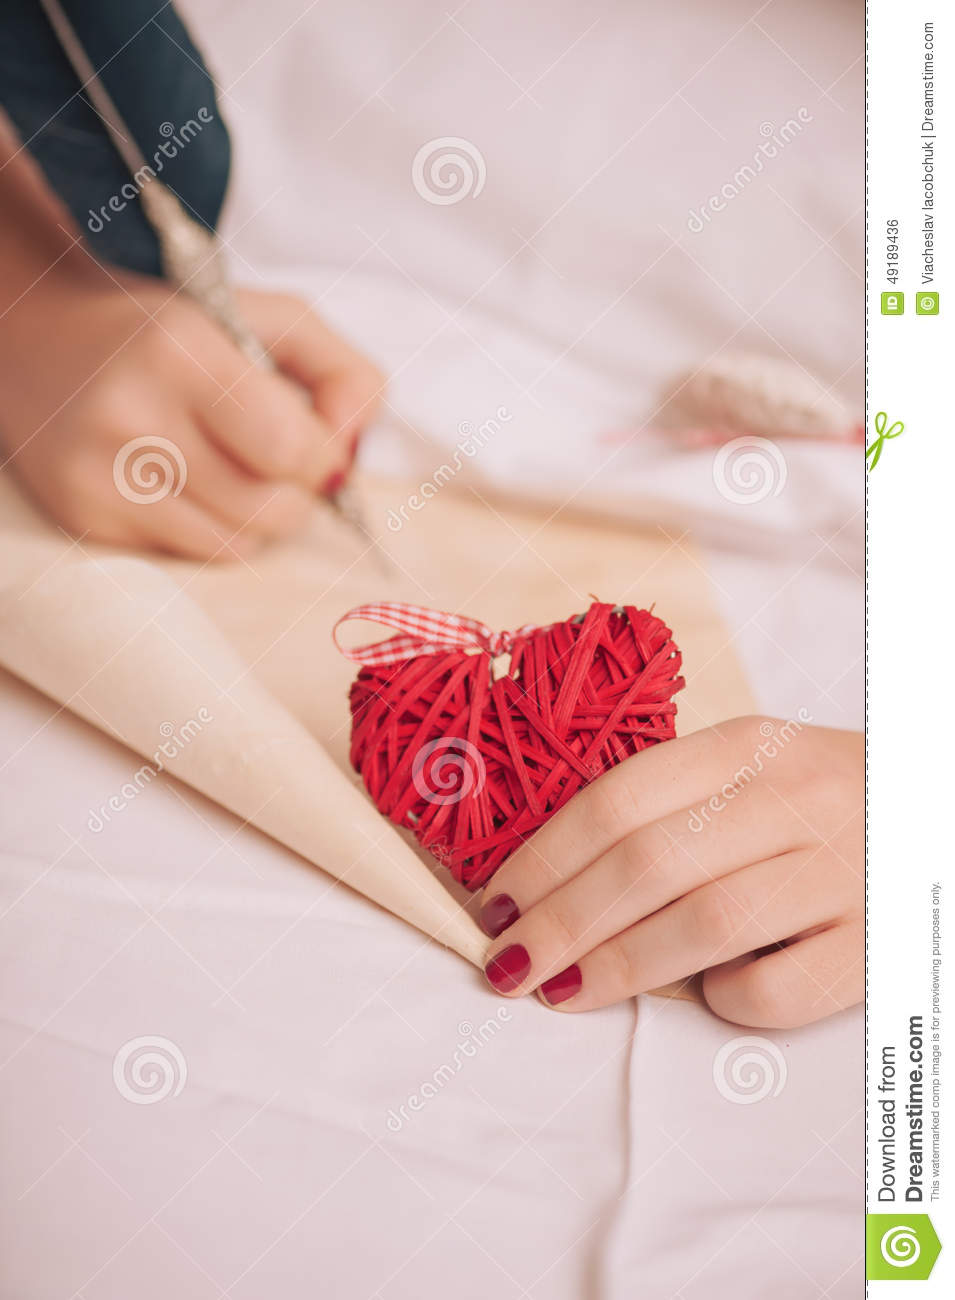 an essay on loving your woman Ever since your ex broke up with you tips to get your ex back english language essay print do you see a man/woman that looks like he/she ahs gone through.